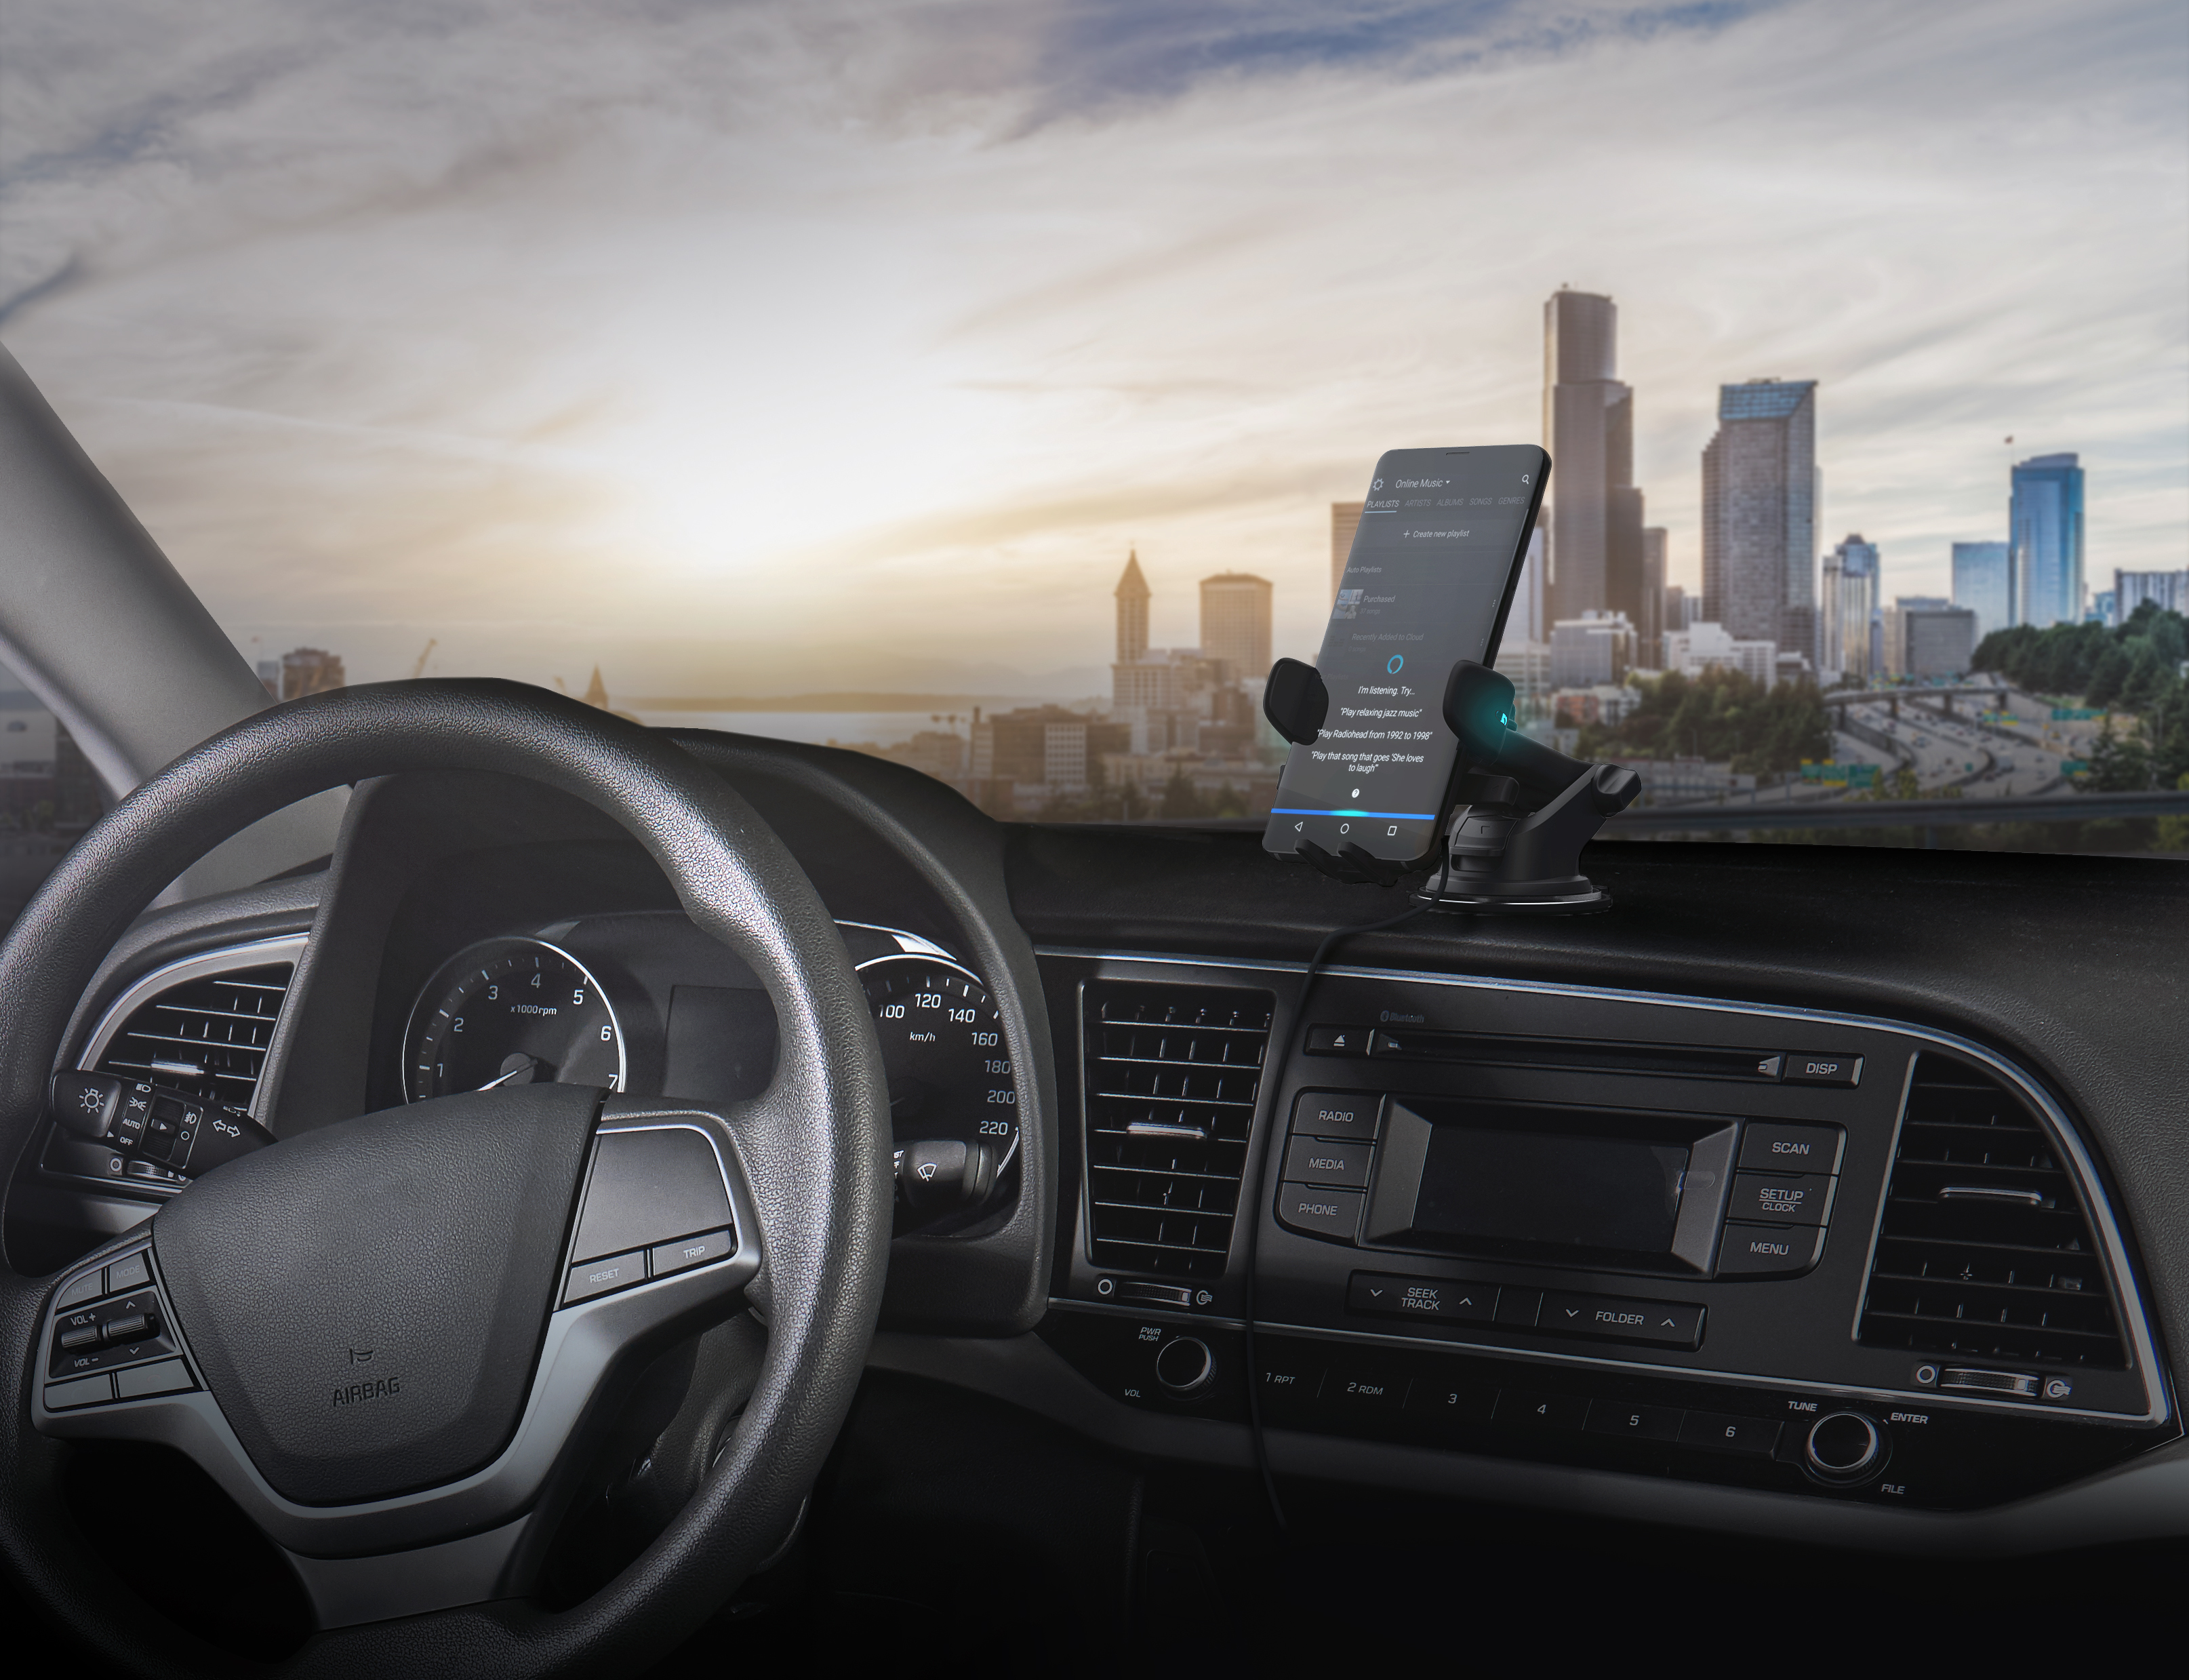 iOttie Launches Revolutionary Smartphone Car Mount with